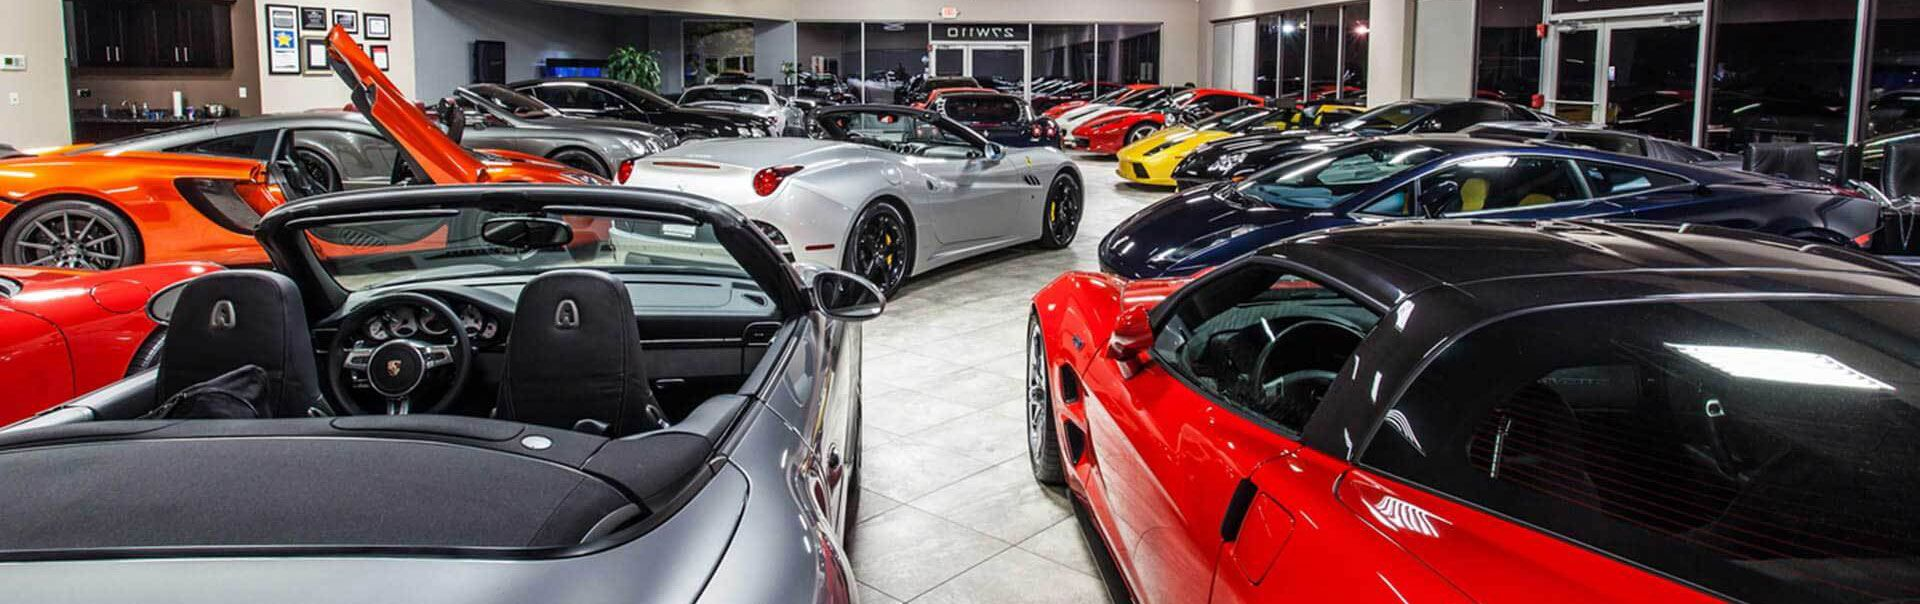 Prestige Car Dealership Las Vegas